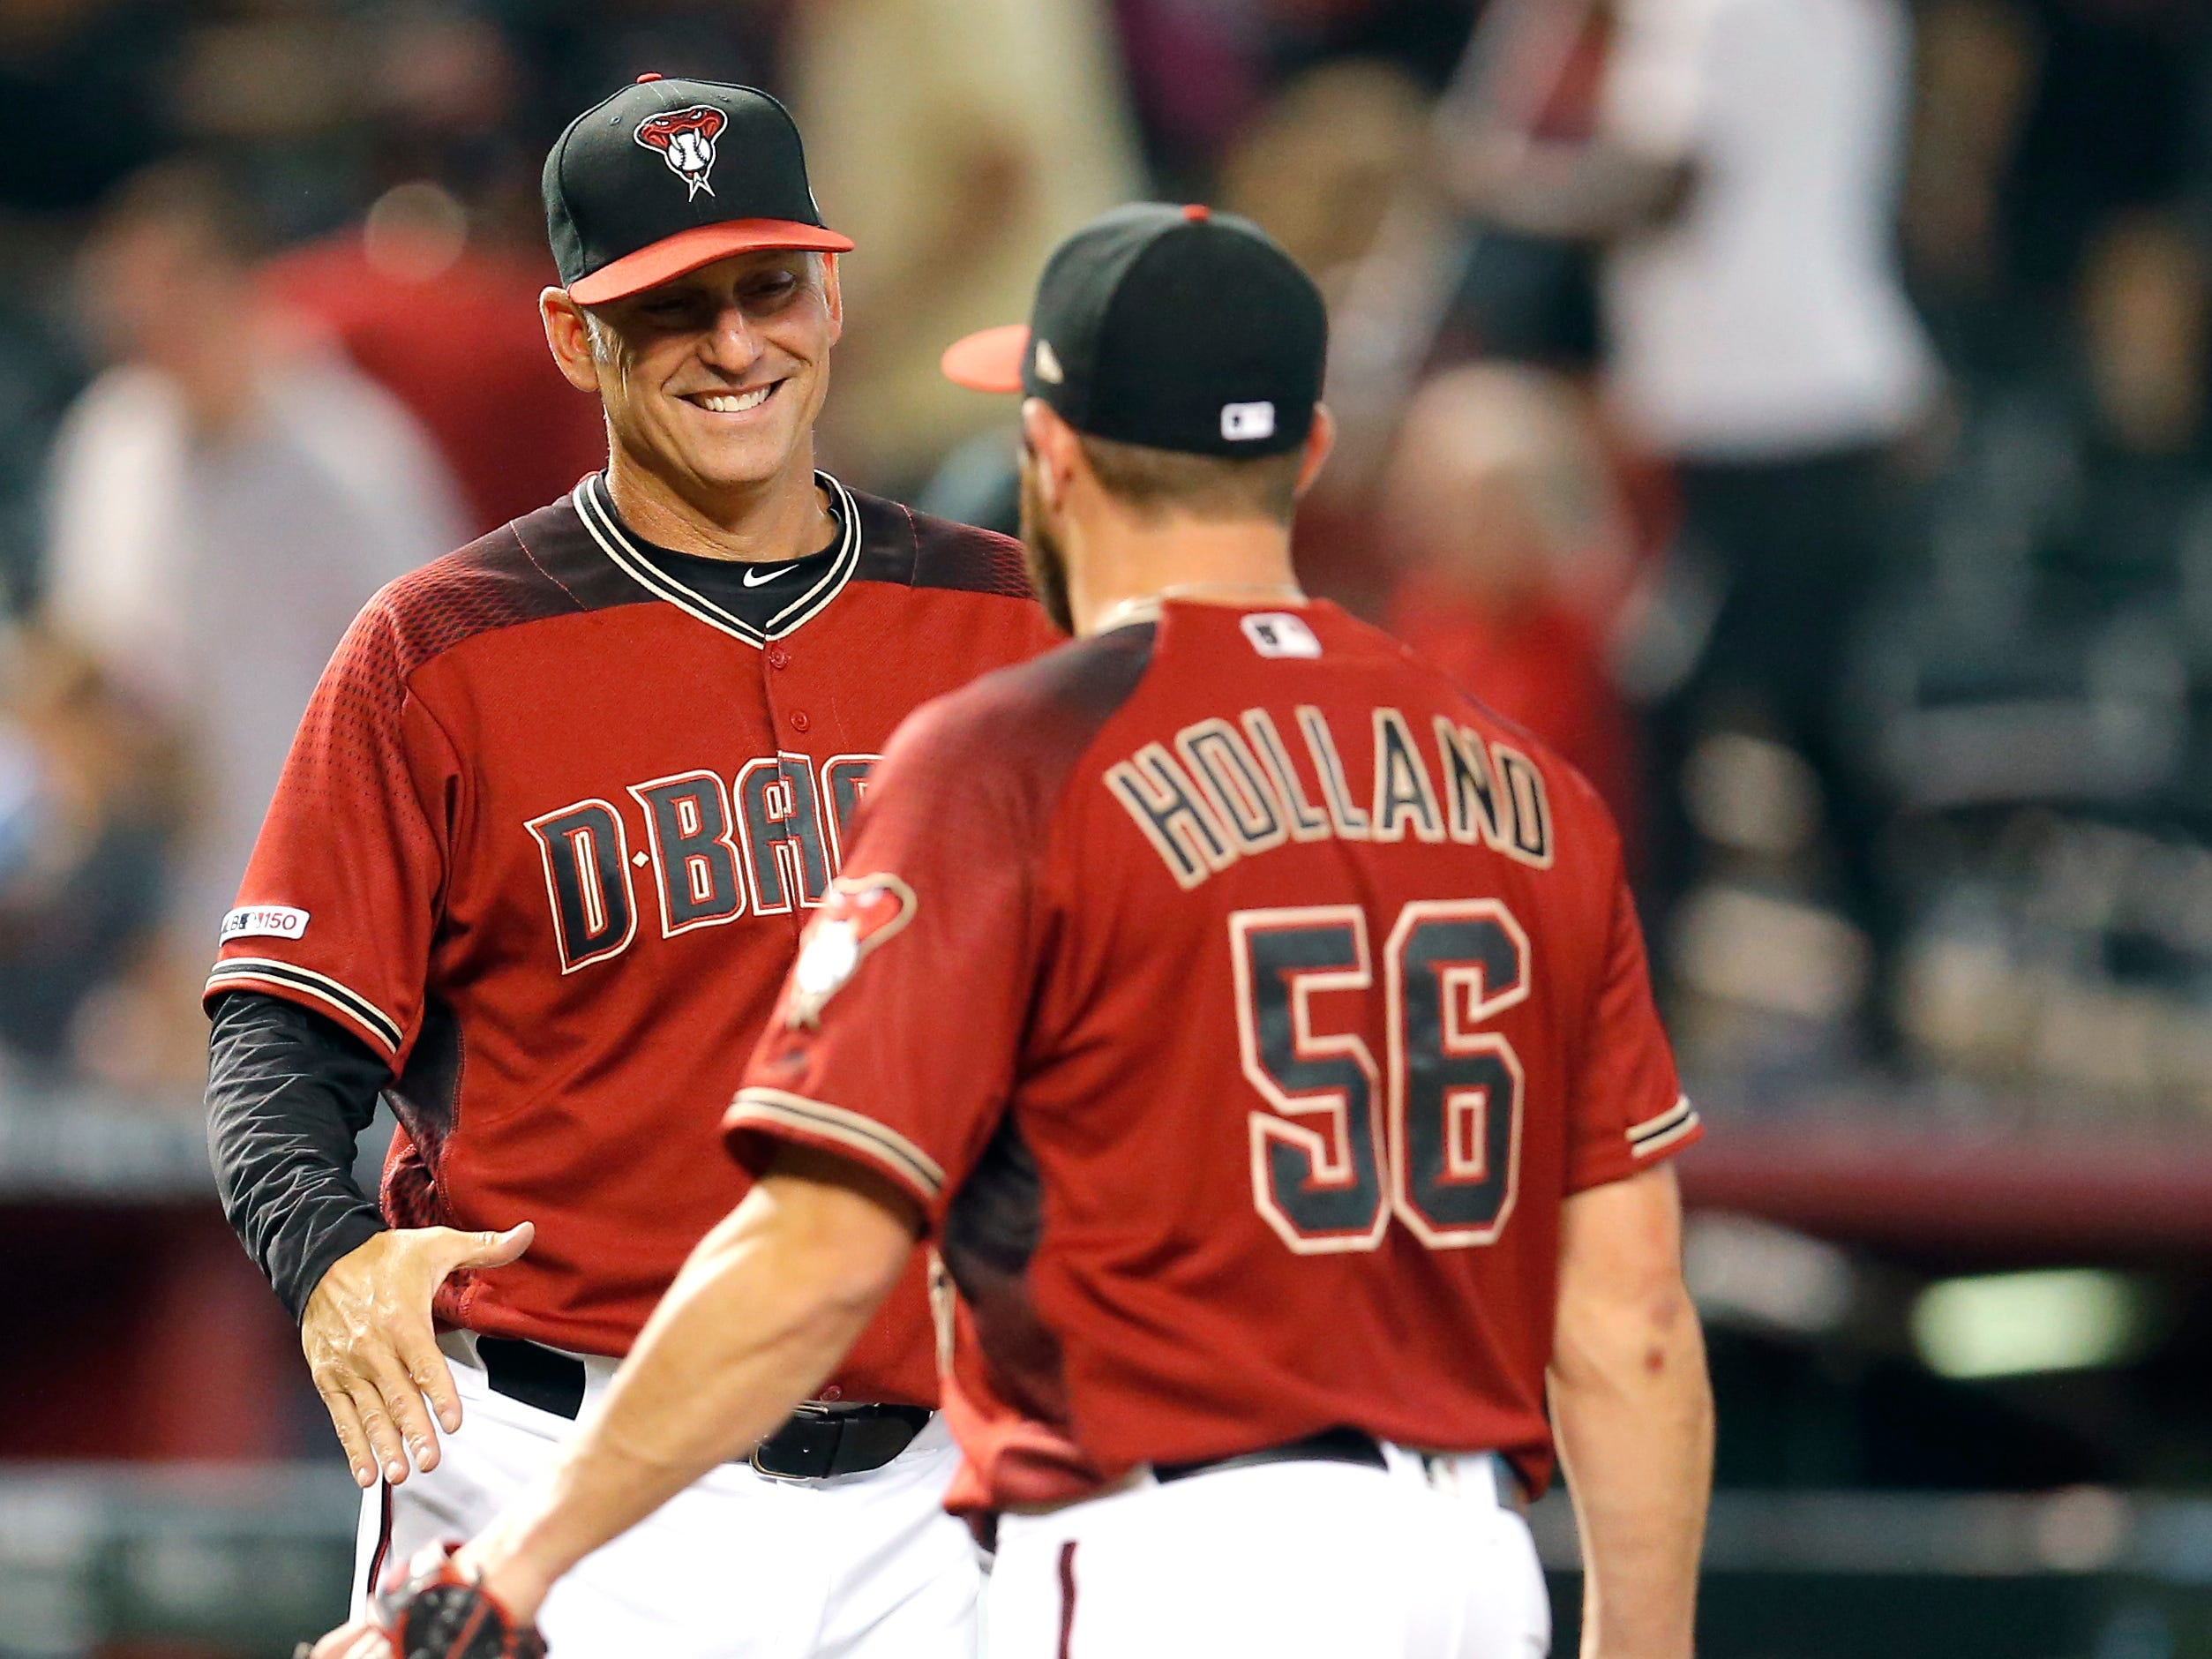 Arizona Diamondbacks manager Torey Lovullo, left, and Greg Holland (56) celebrate after defeating the San Diego Padres in a baseball game, Sunday, April 14, 2019, in Phoenix. (AP Photo/Rick Scuteri)